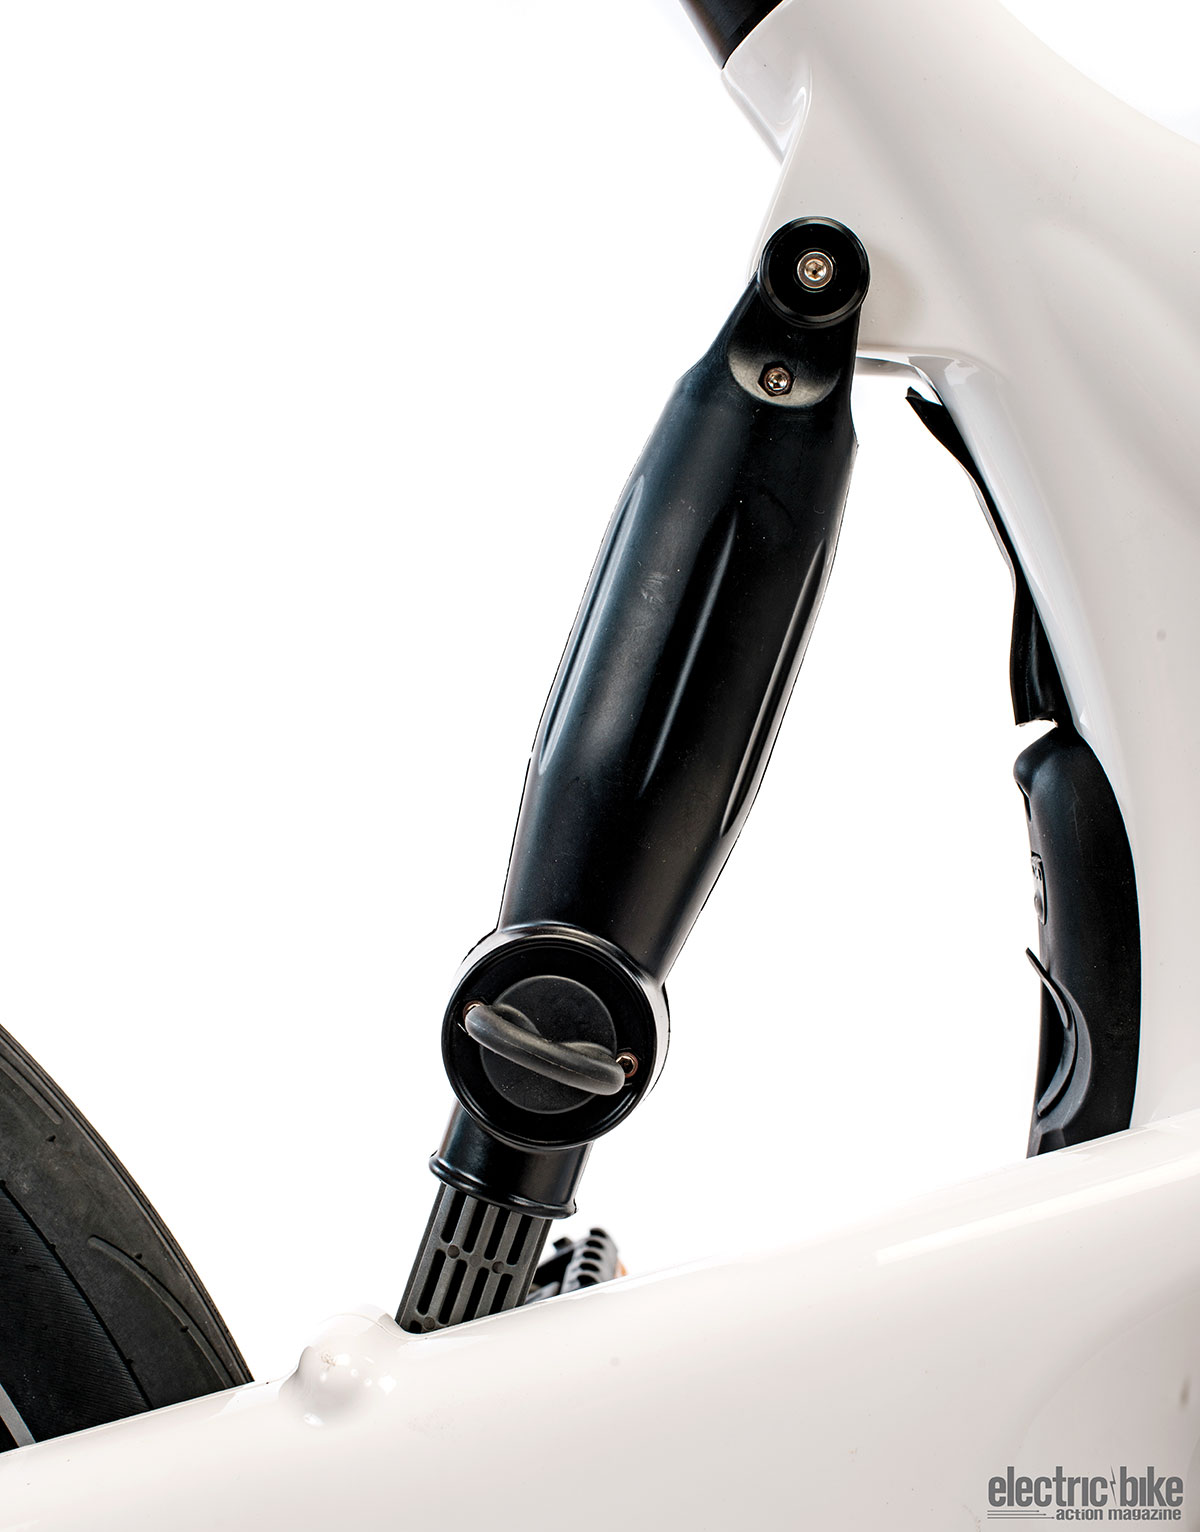 The brace in the rear provides 2.5mm (1 inch) of travel, enough to take the small bumps out.